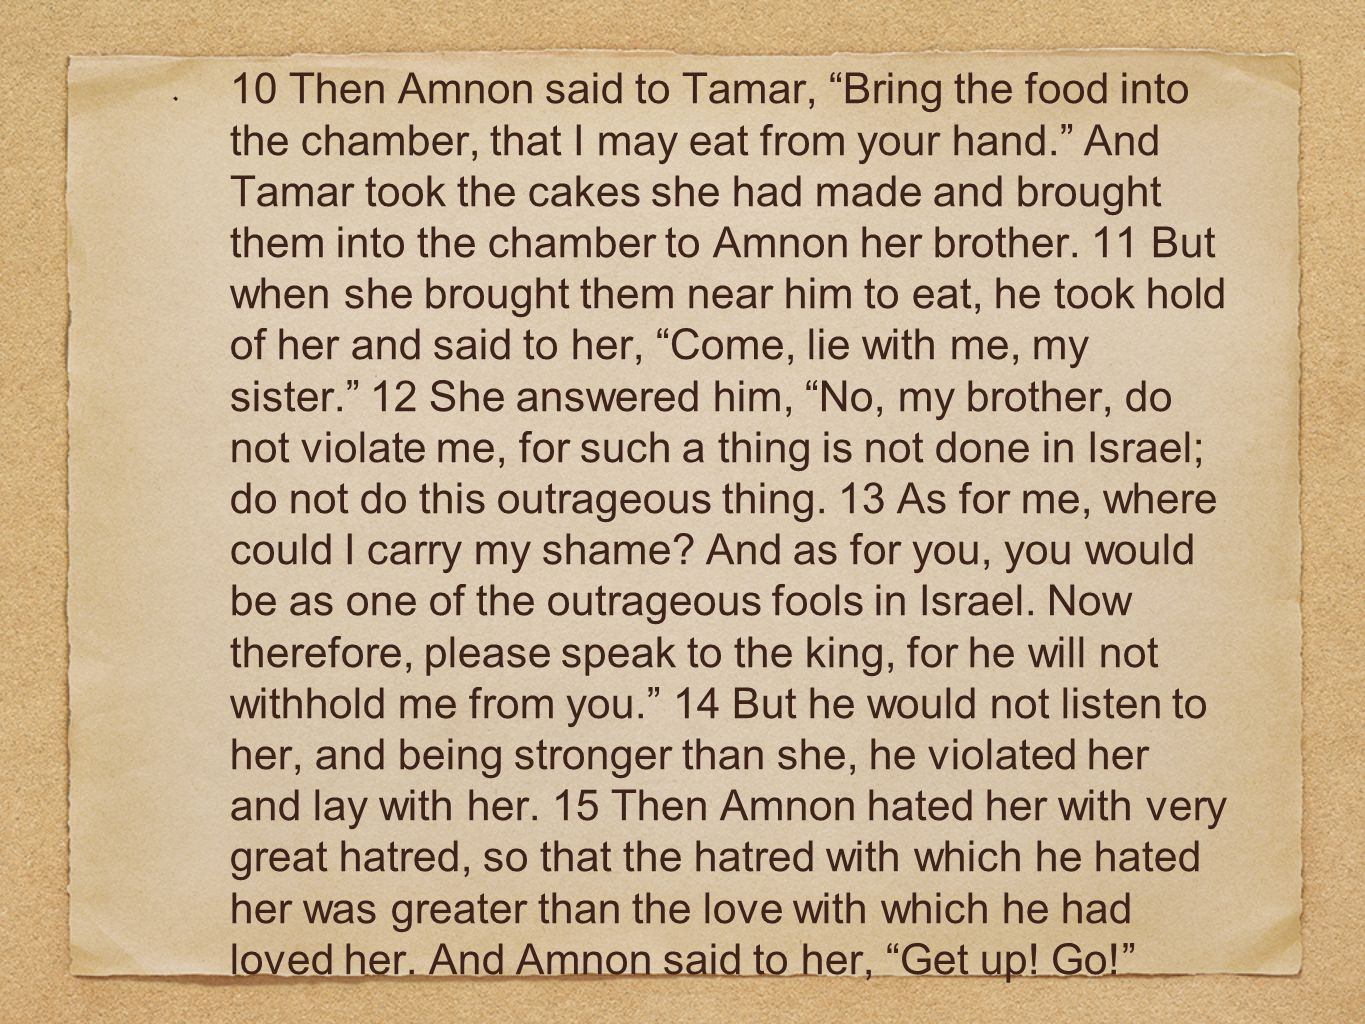 10 Then Amnon said to Tamar, Bring the food into the chamber, that I may eat from your hand. And Tamar took the cakes she had made and brought them into the chamber to Amnon her brother.